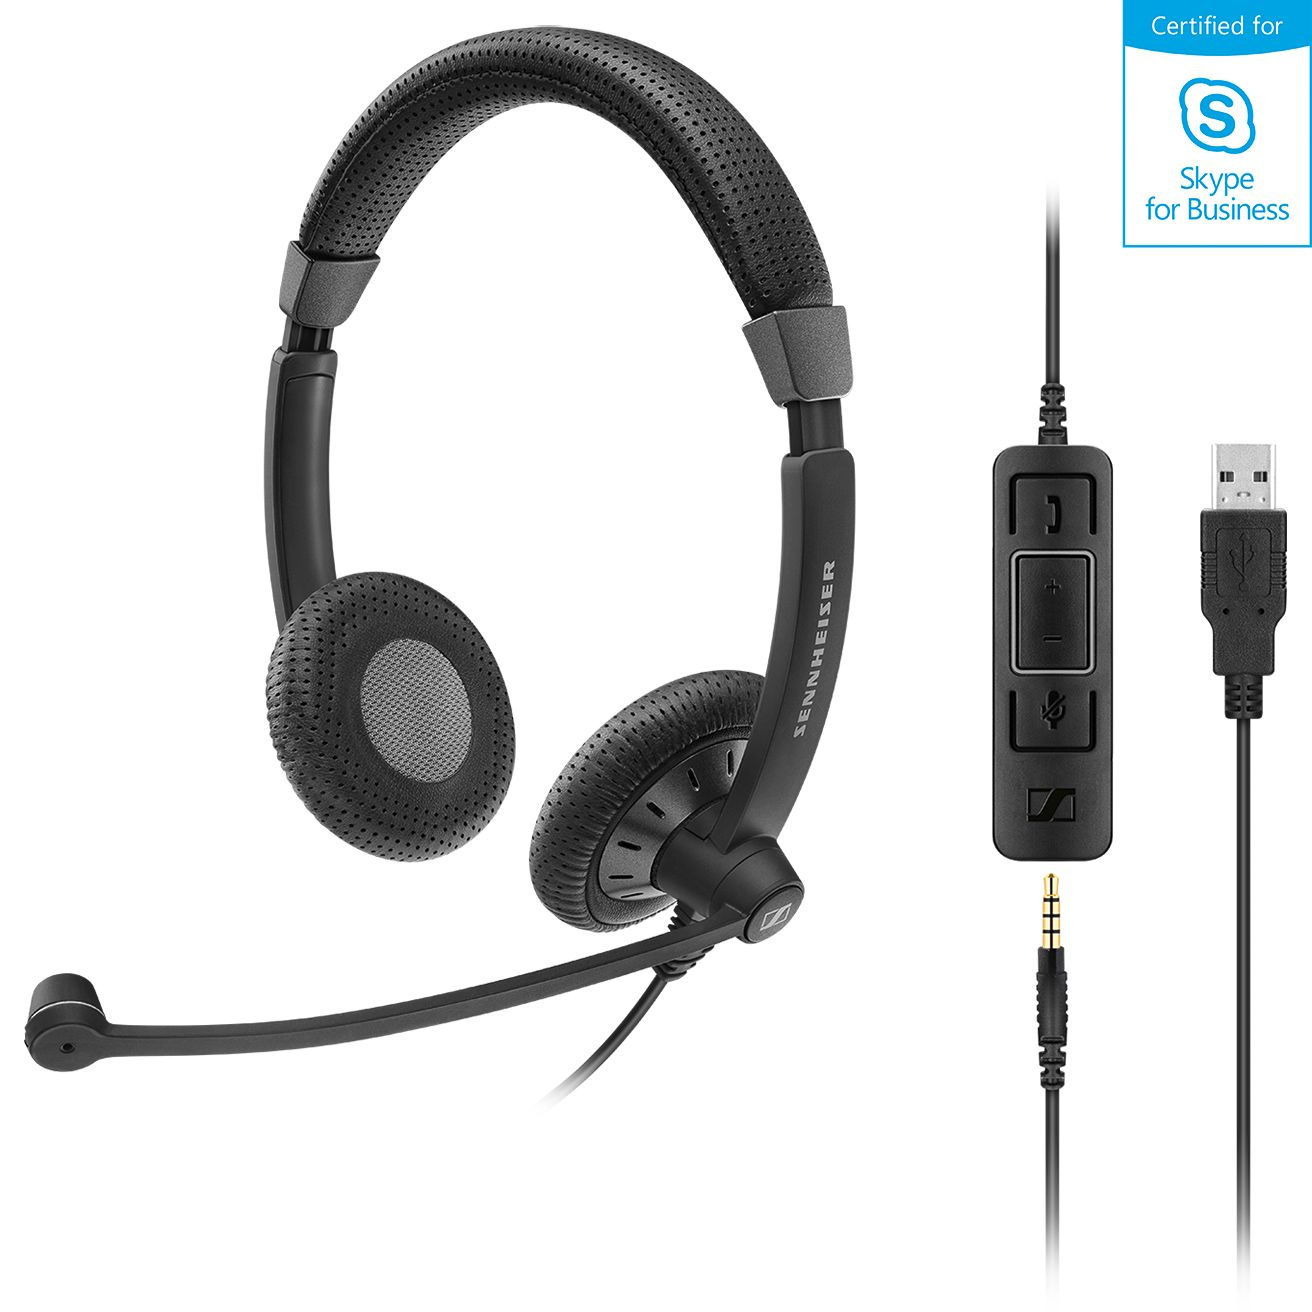 Sennheiser, Stereo, corded, headset, with, 3.5, mm, four-pole, jack, plus, detachable, USB, cable, with, call, control., Noise, cancel, m,